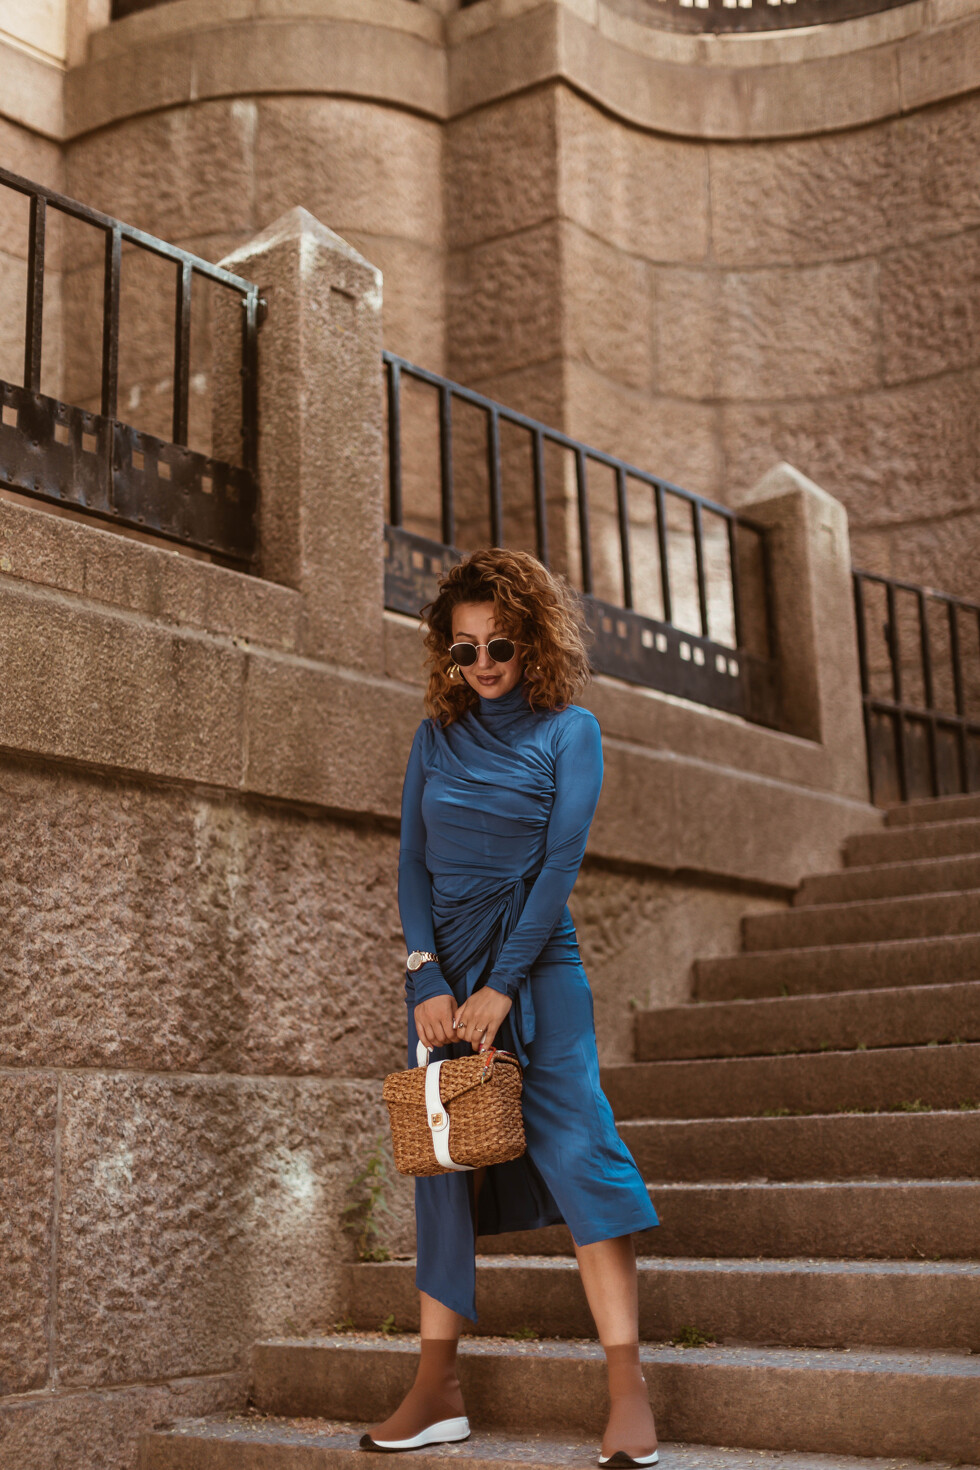 sara-che-h&m-dress-trend-ss18-beyond-retro-vintage-basket-bag-joshua-sanders-sock-sneaker-go-to-paris-curly-hair